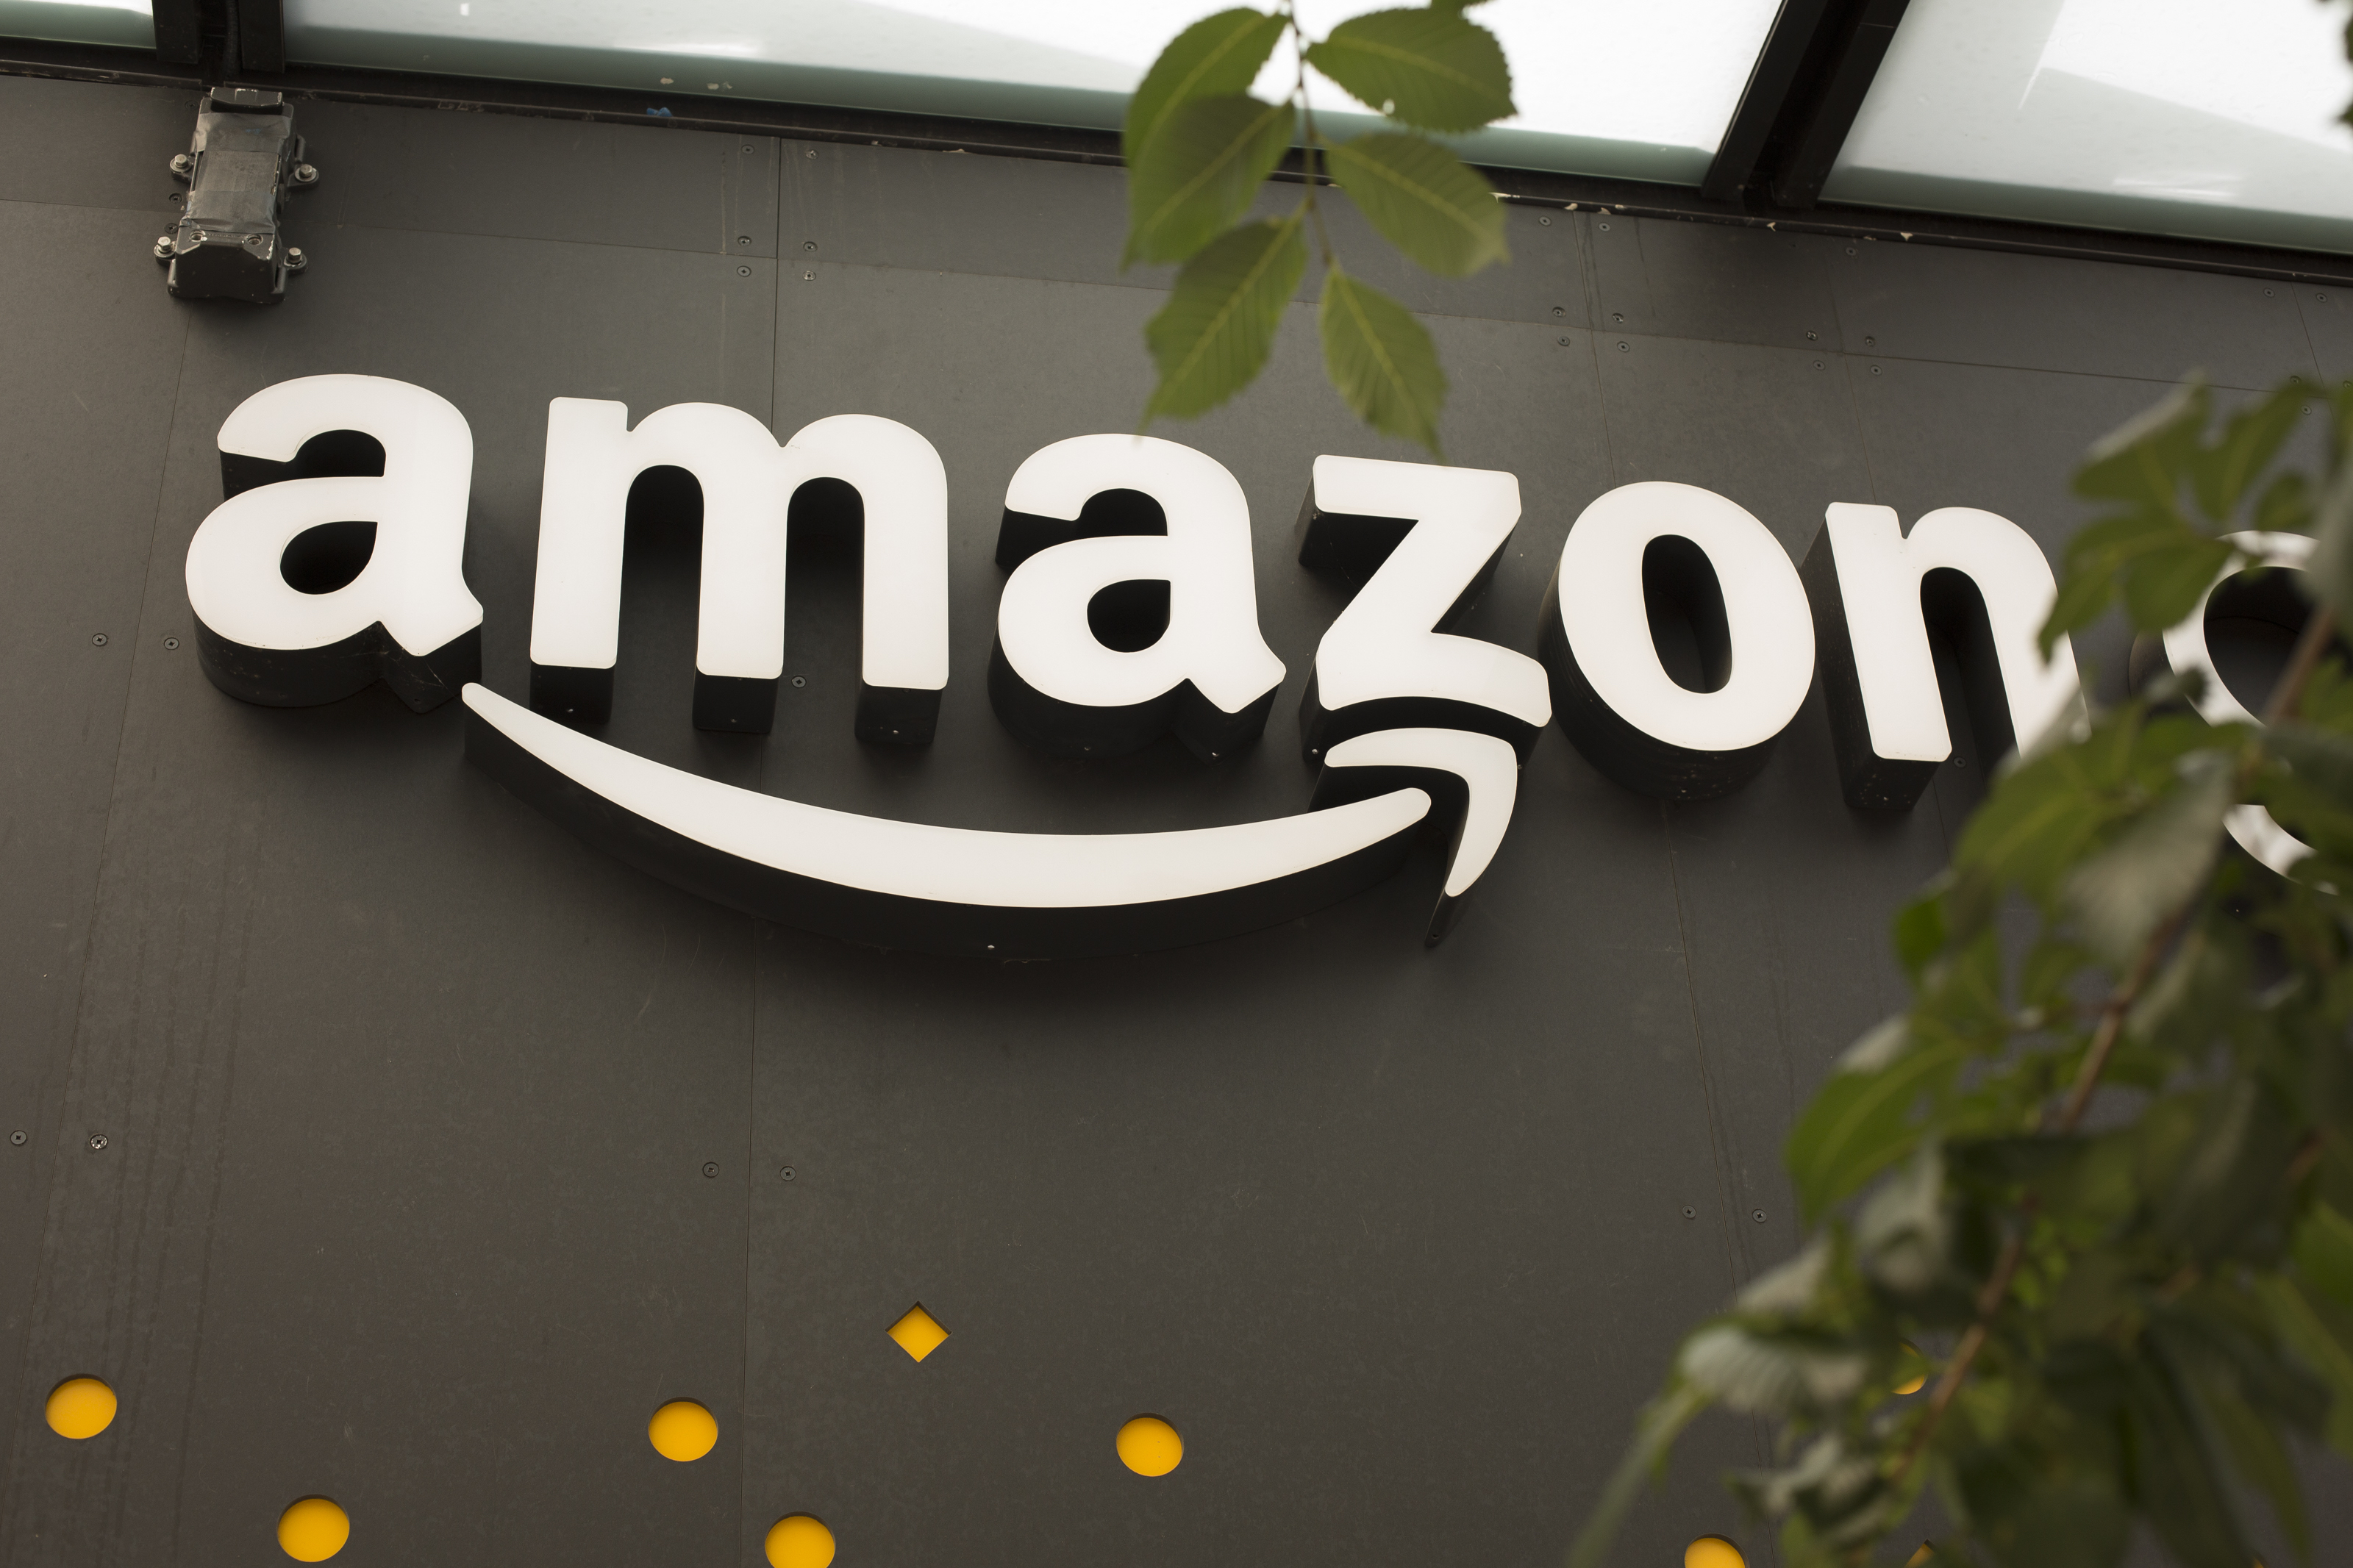 24 Amazon Employees Hospitalized After Robot Accidentally Released Bear Spray